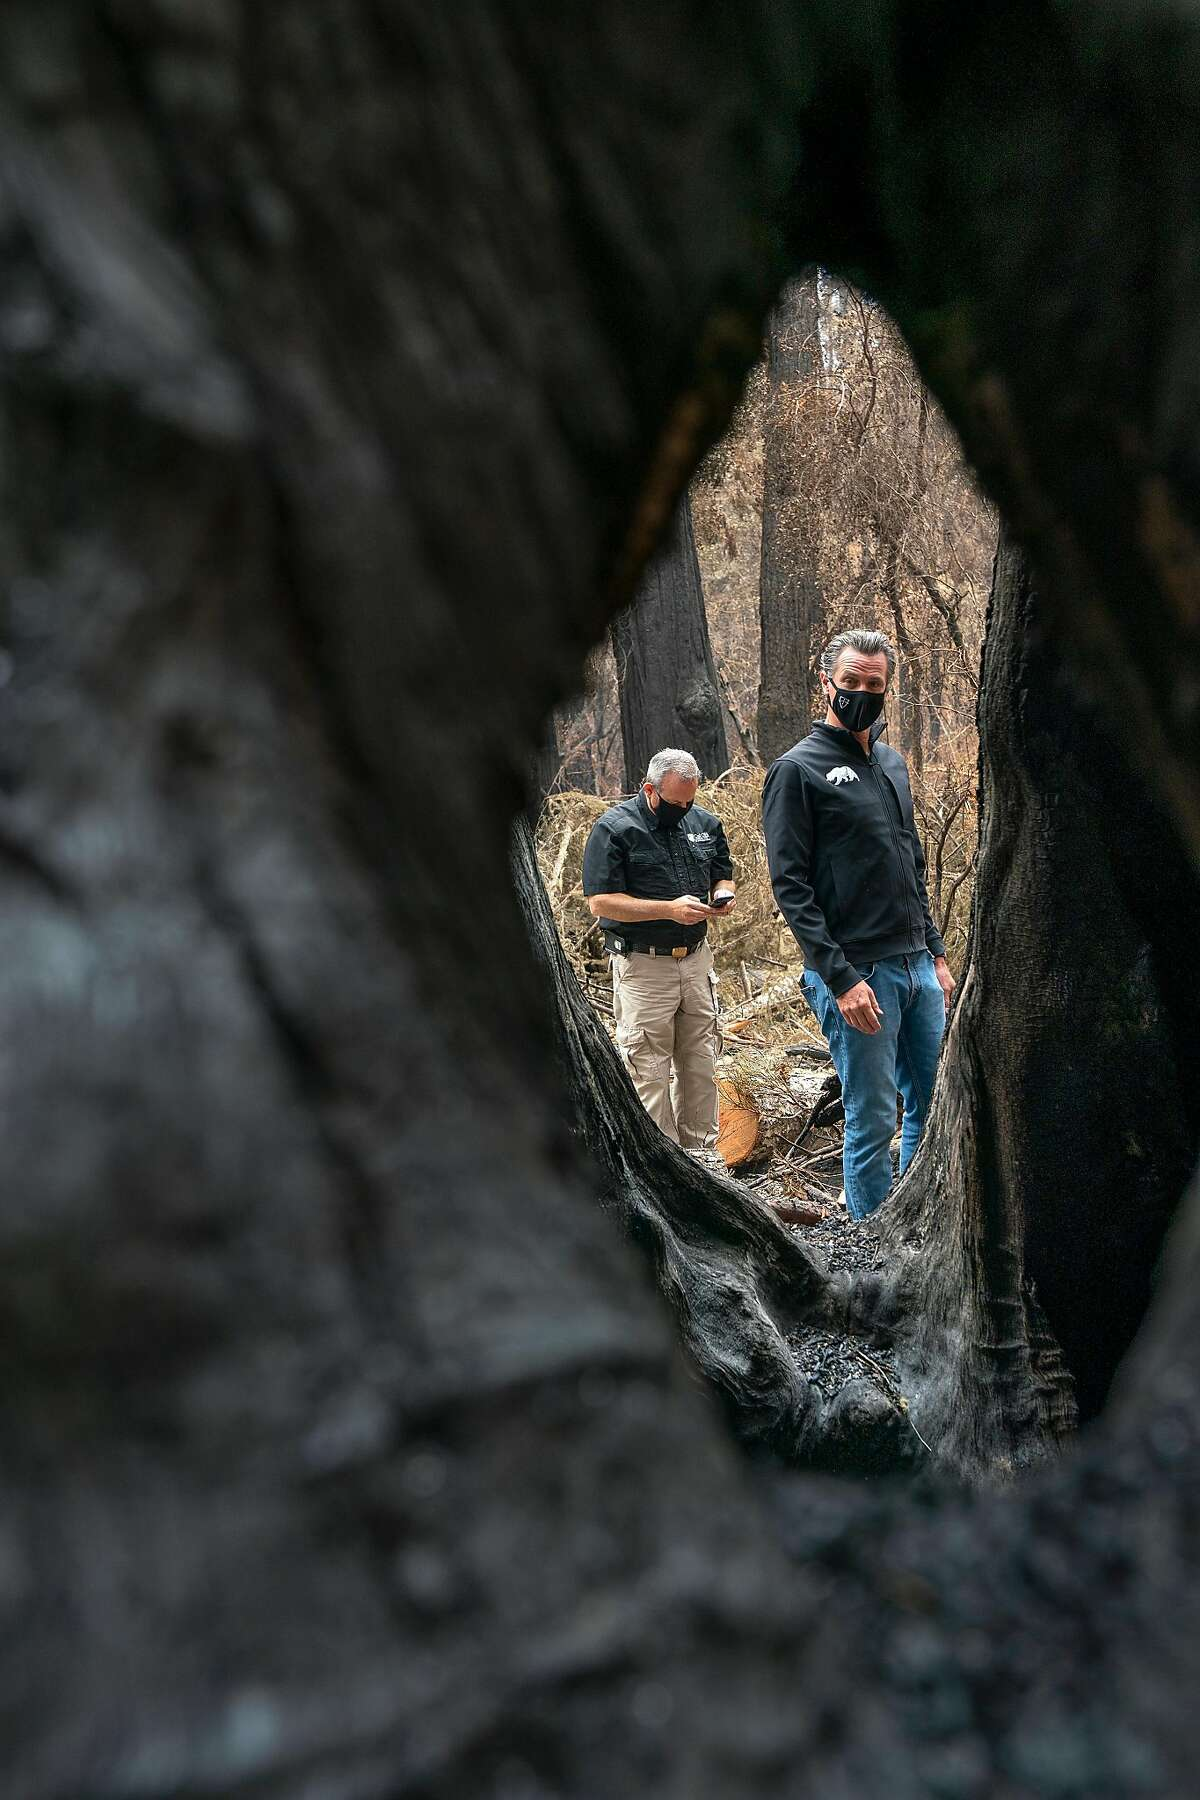 Governor Gavin Newsom looks through the hole at the trunk of the Mother of the Forest Redwood tree as he tours the fire damage to Big Basin Redwoods State Park on Tuesday, Sept. 1, 2020 in Boulder Creek, Calif. The Mother of the Forest Redwood tree is the tallest tree in the park.